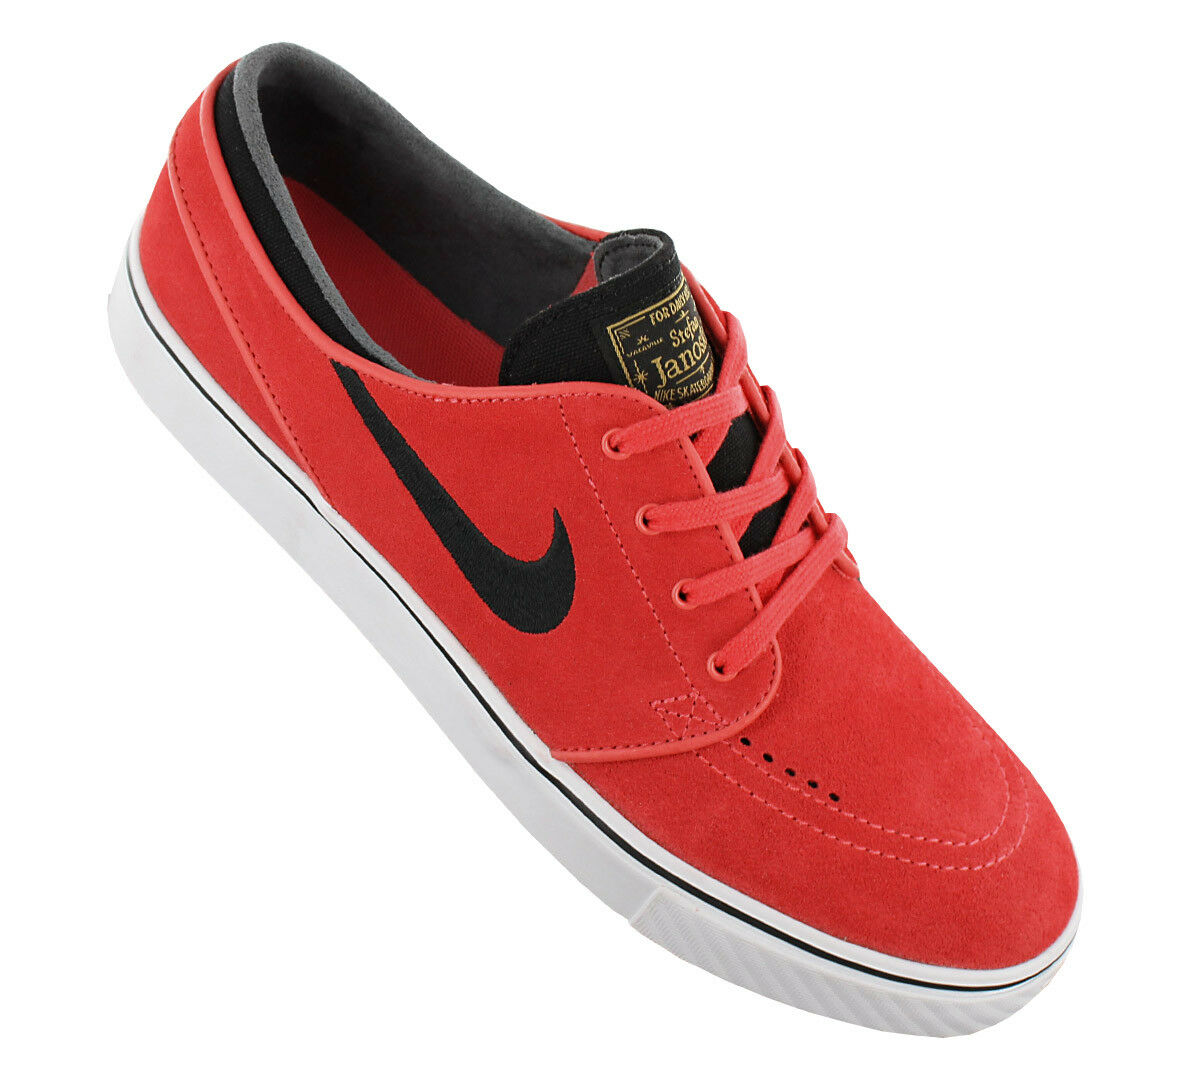 NEW Nike Zoom Stefan Janoski 333824-801 Men''s shoes Trainers Sneakers SALE